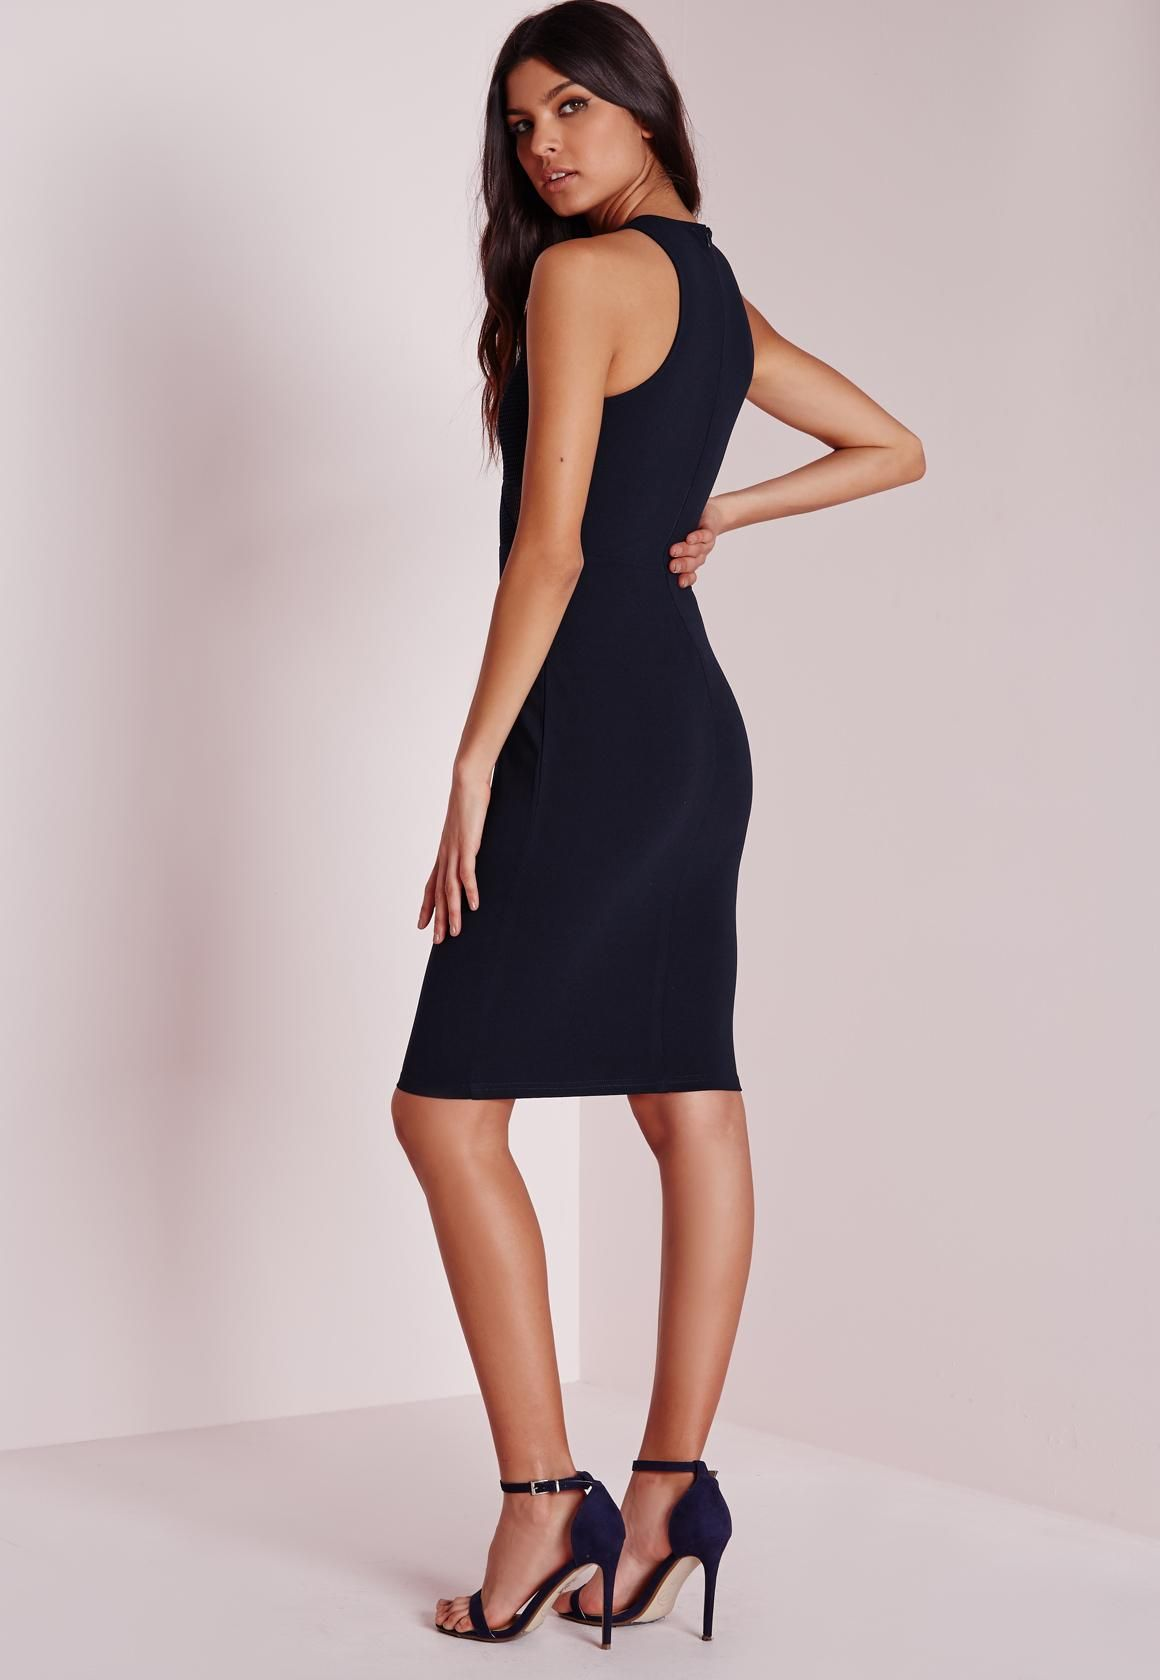 8682e2c352 Pin by hung on Livia Rangel Collection in 2019 | Navy midi dress ...